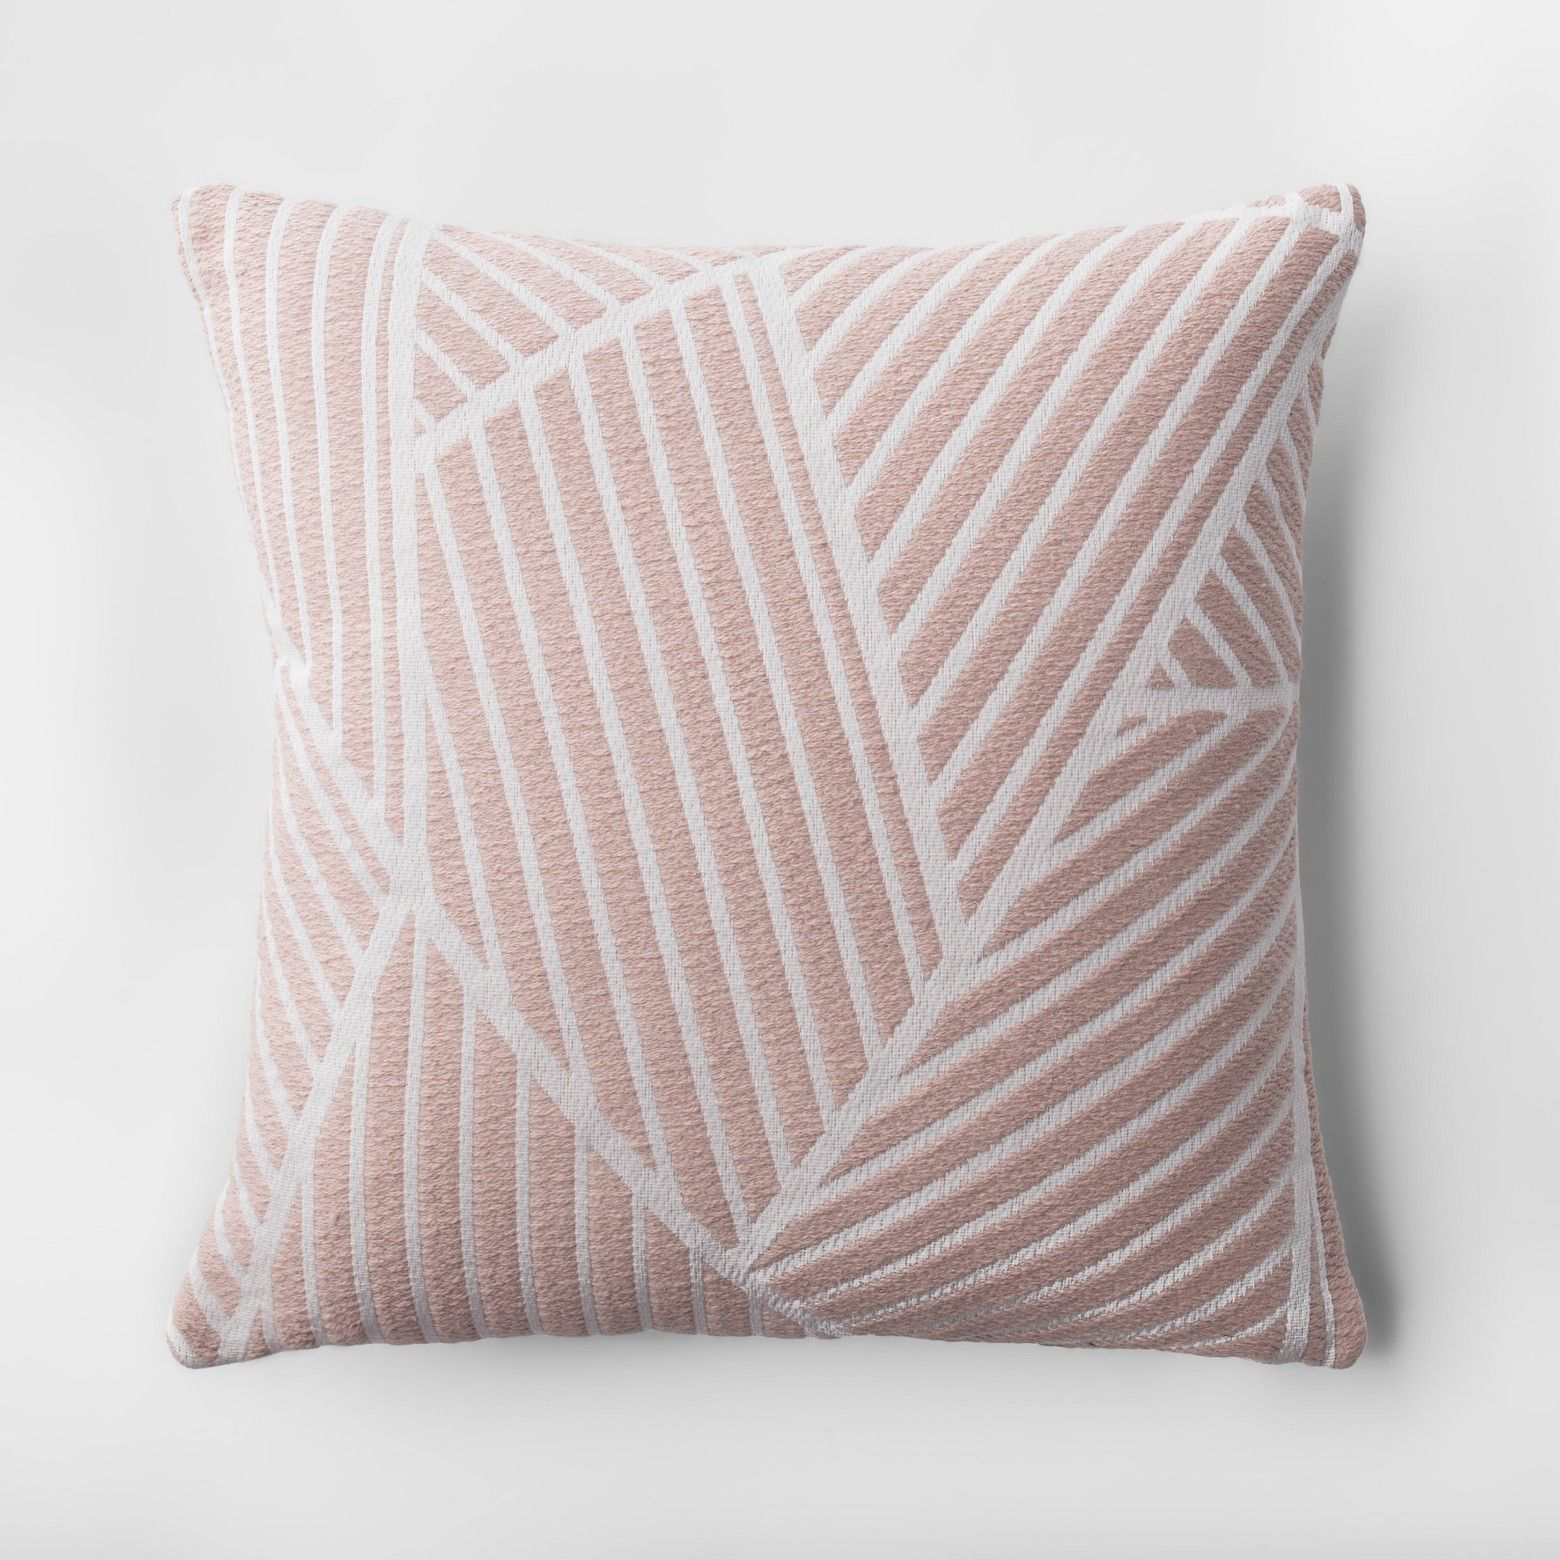 home pale large green navy tan design pillows gold aqua throw for and pillow pink blue decorative teal idea black nautical